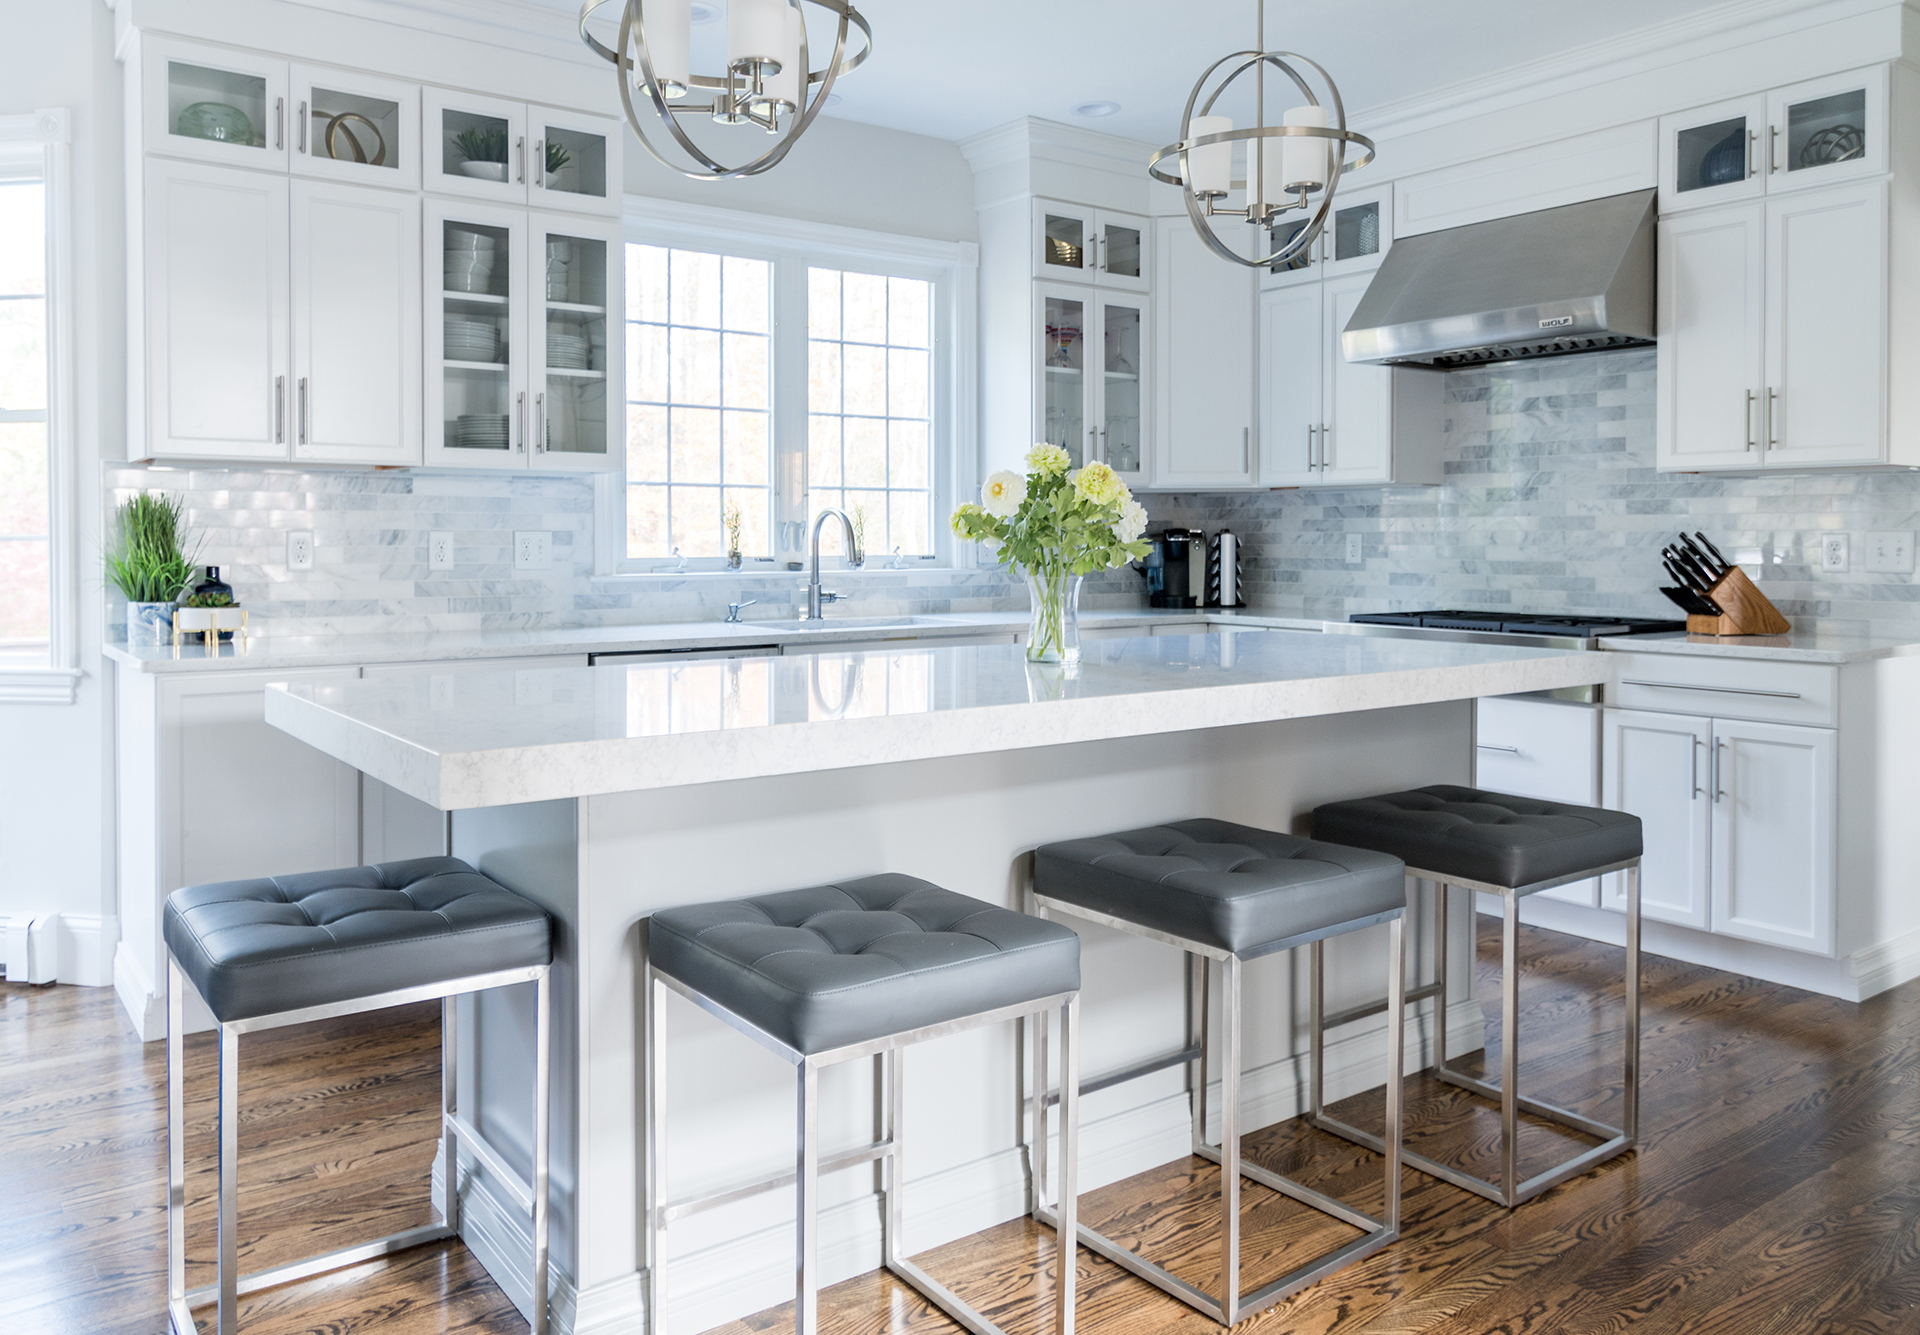 Common homeowner mistakes to avoid when remodeling your kitchen ...